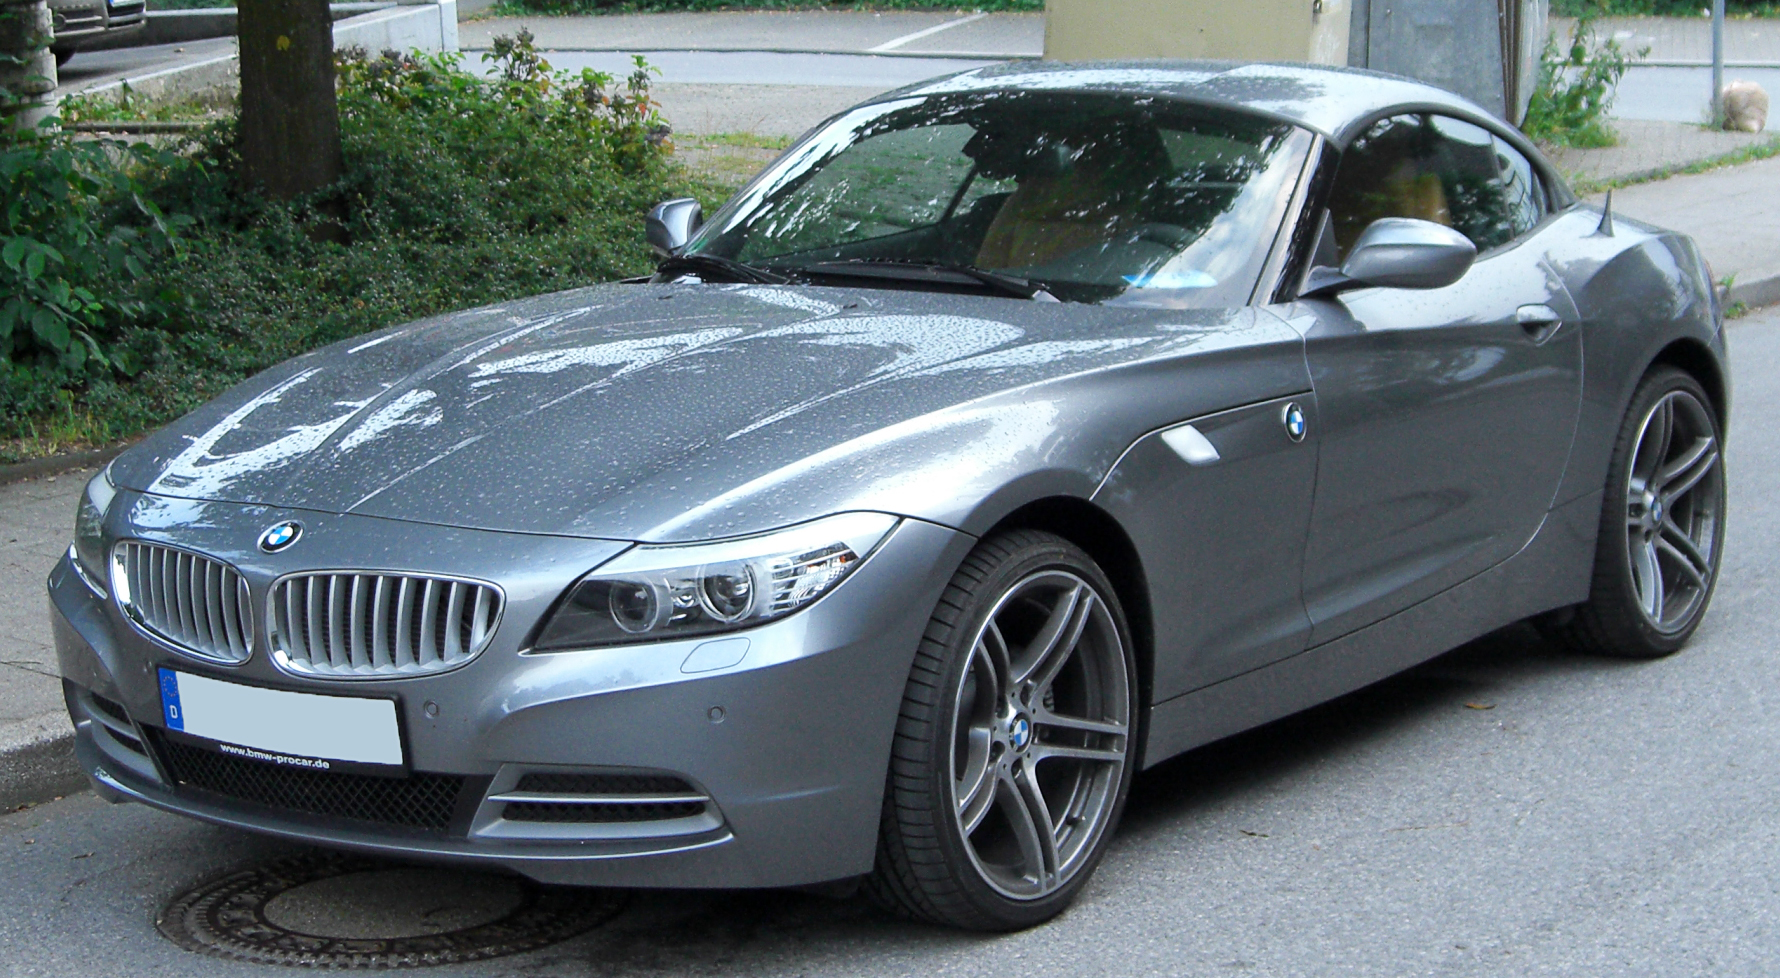 File:BMW Z4 (E89) front 20100705.jpg - Wikimedia Commons